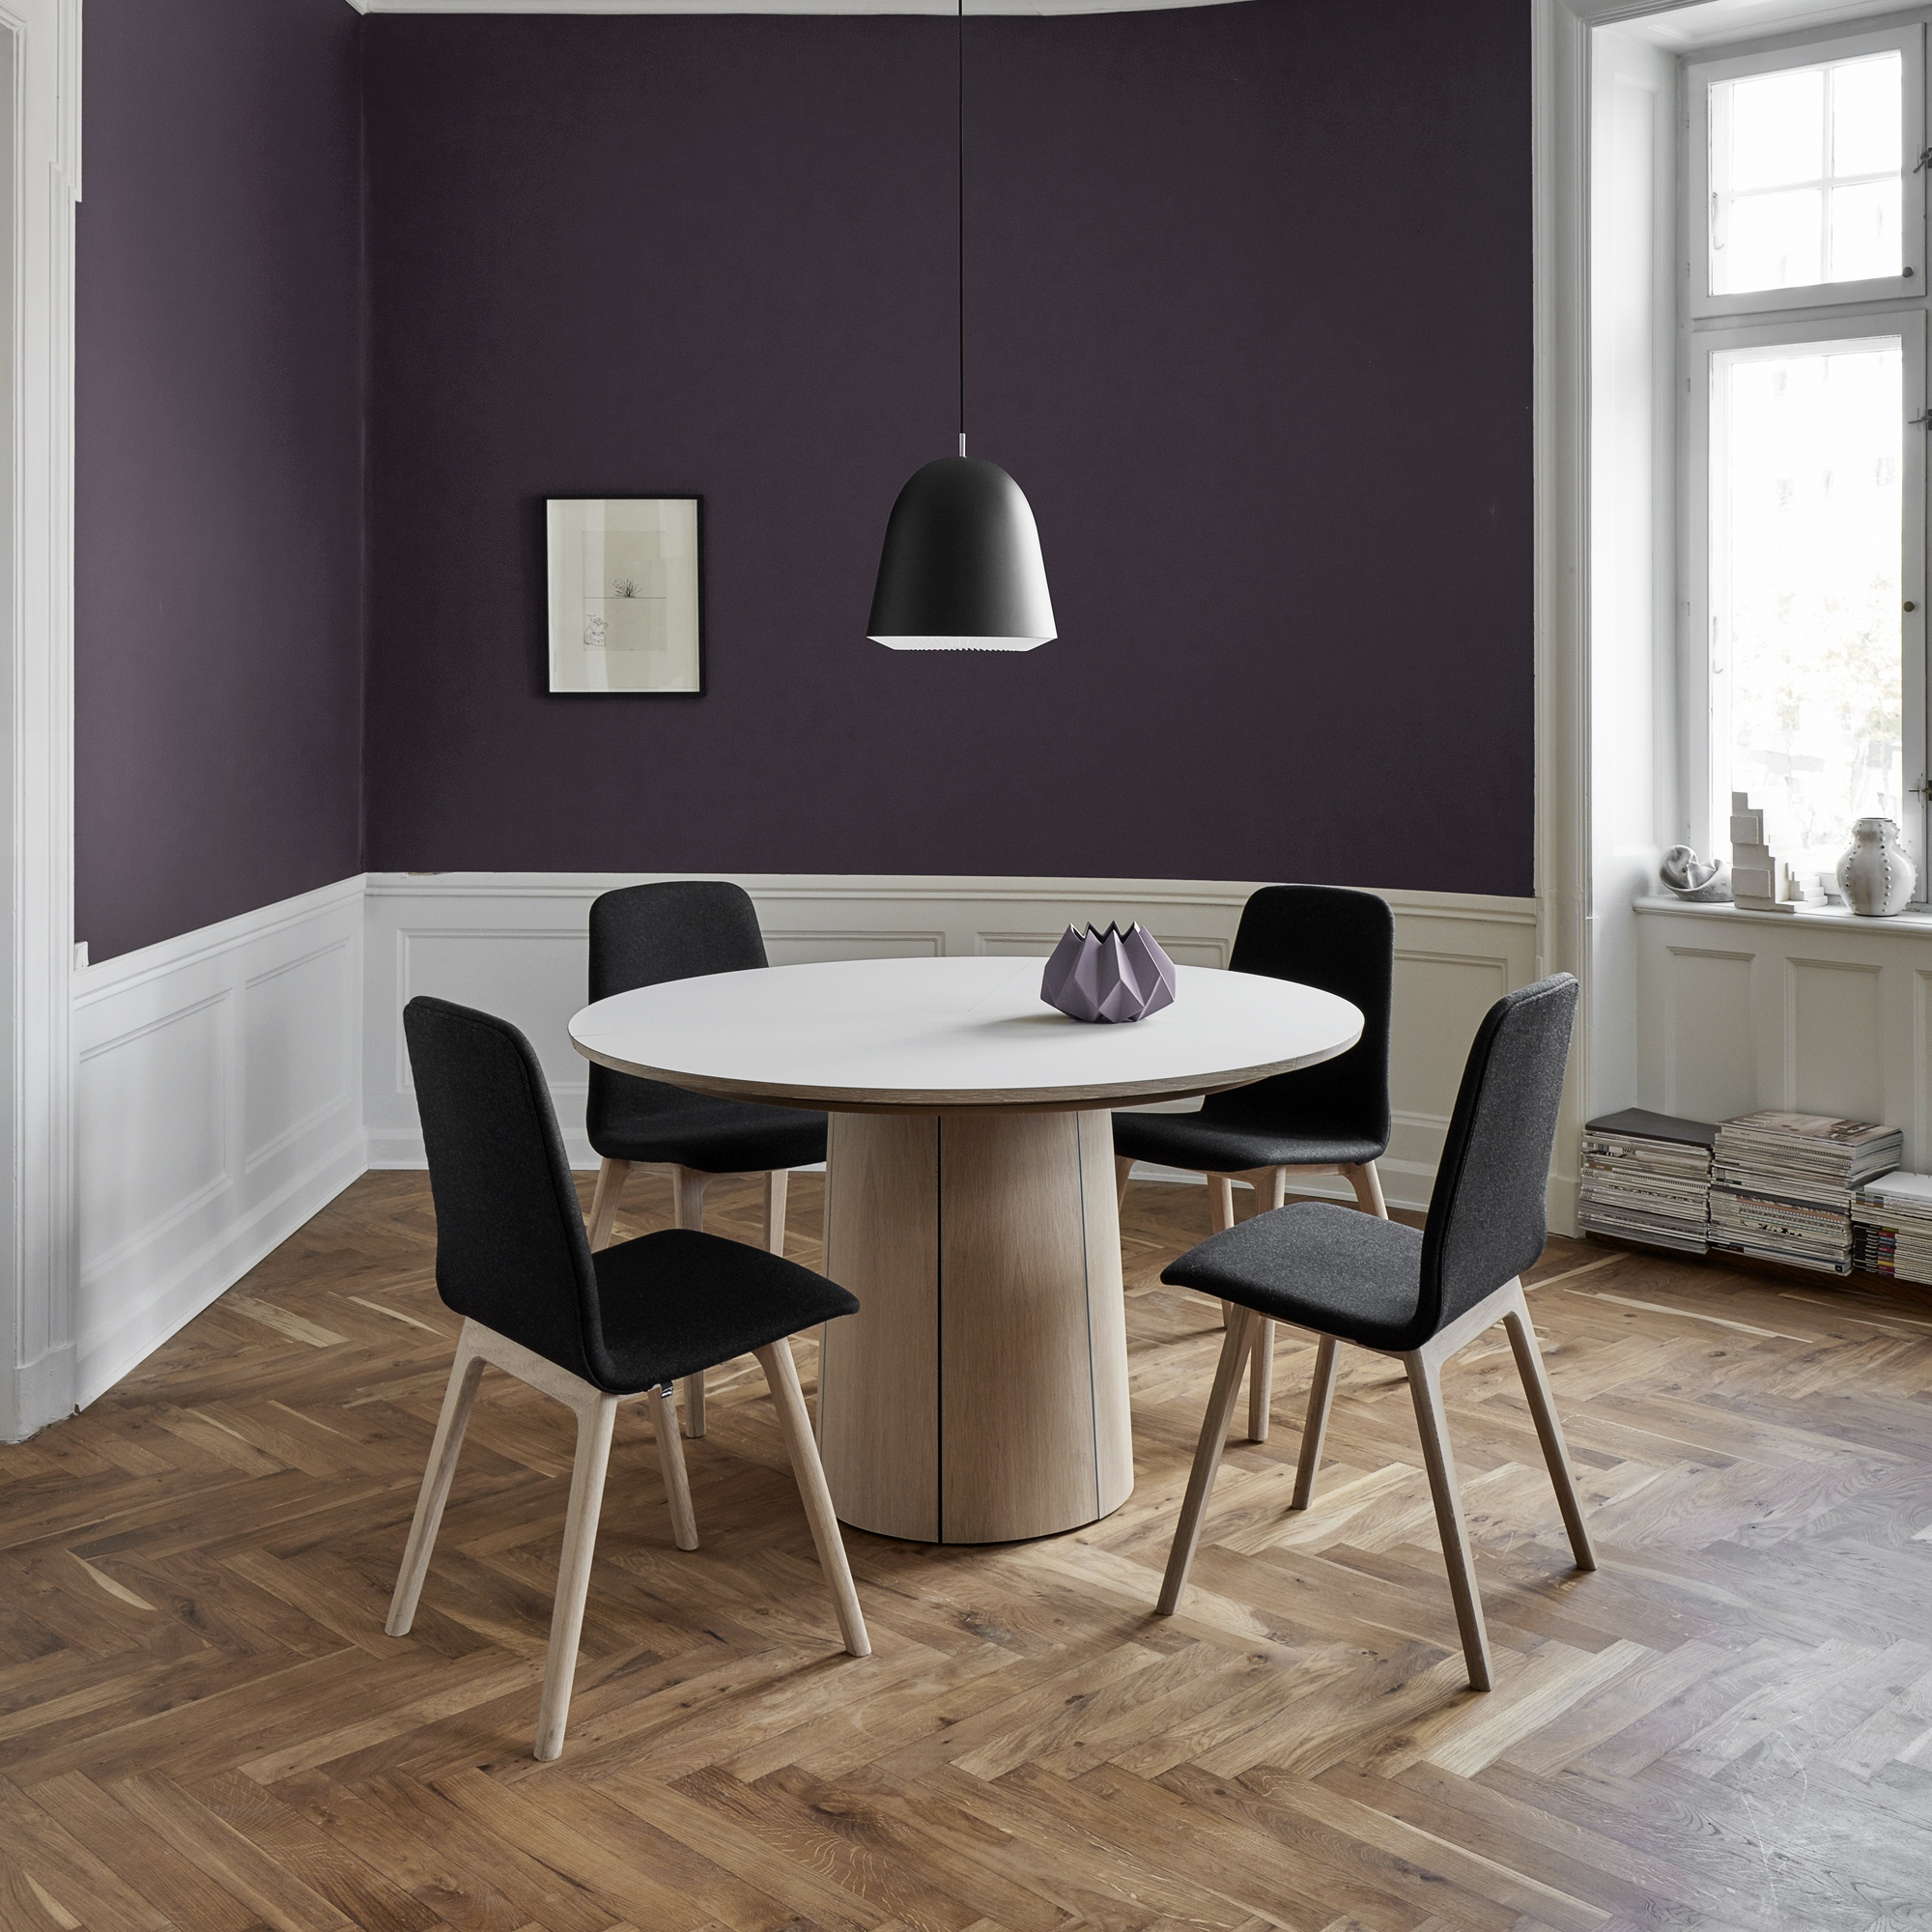 Merveilleux Skovby Extending Dining Table And 4 Chairs